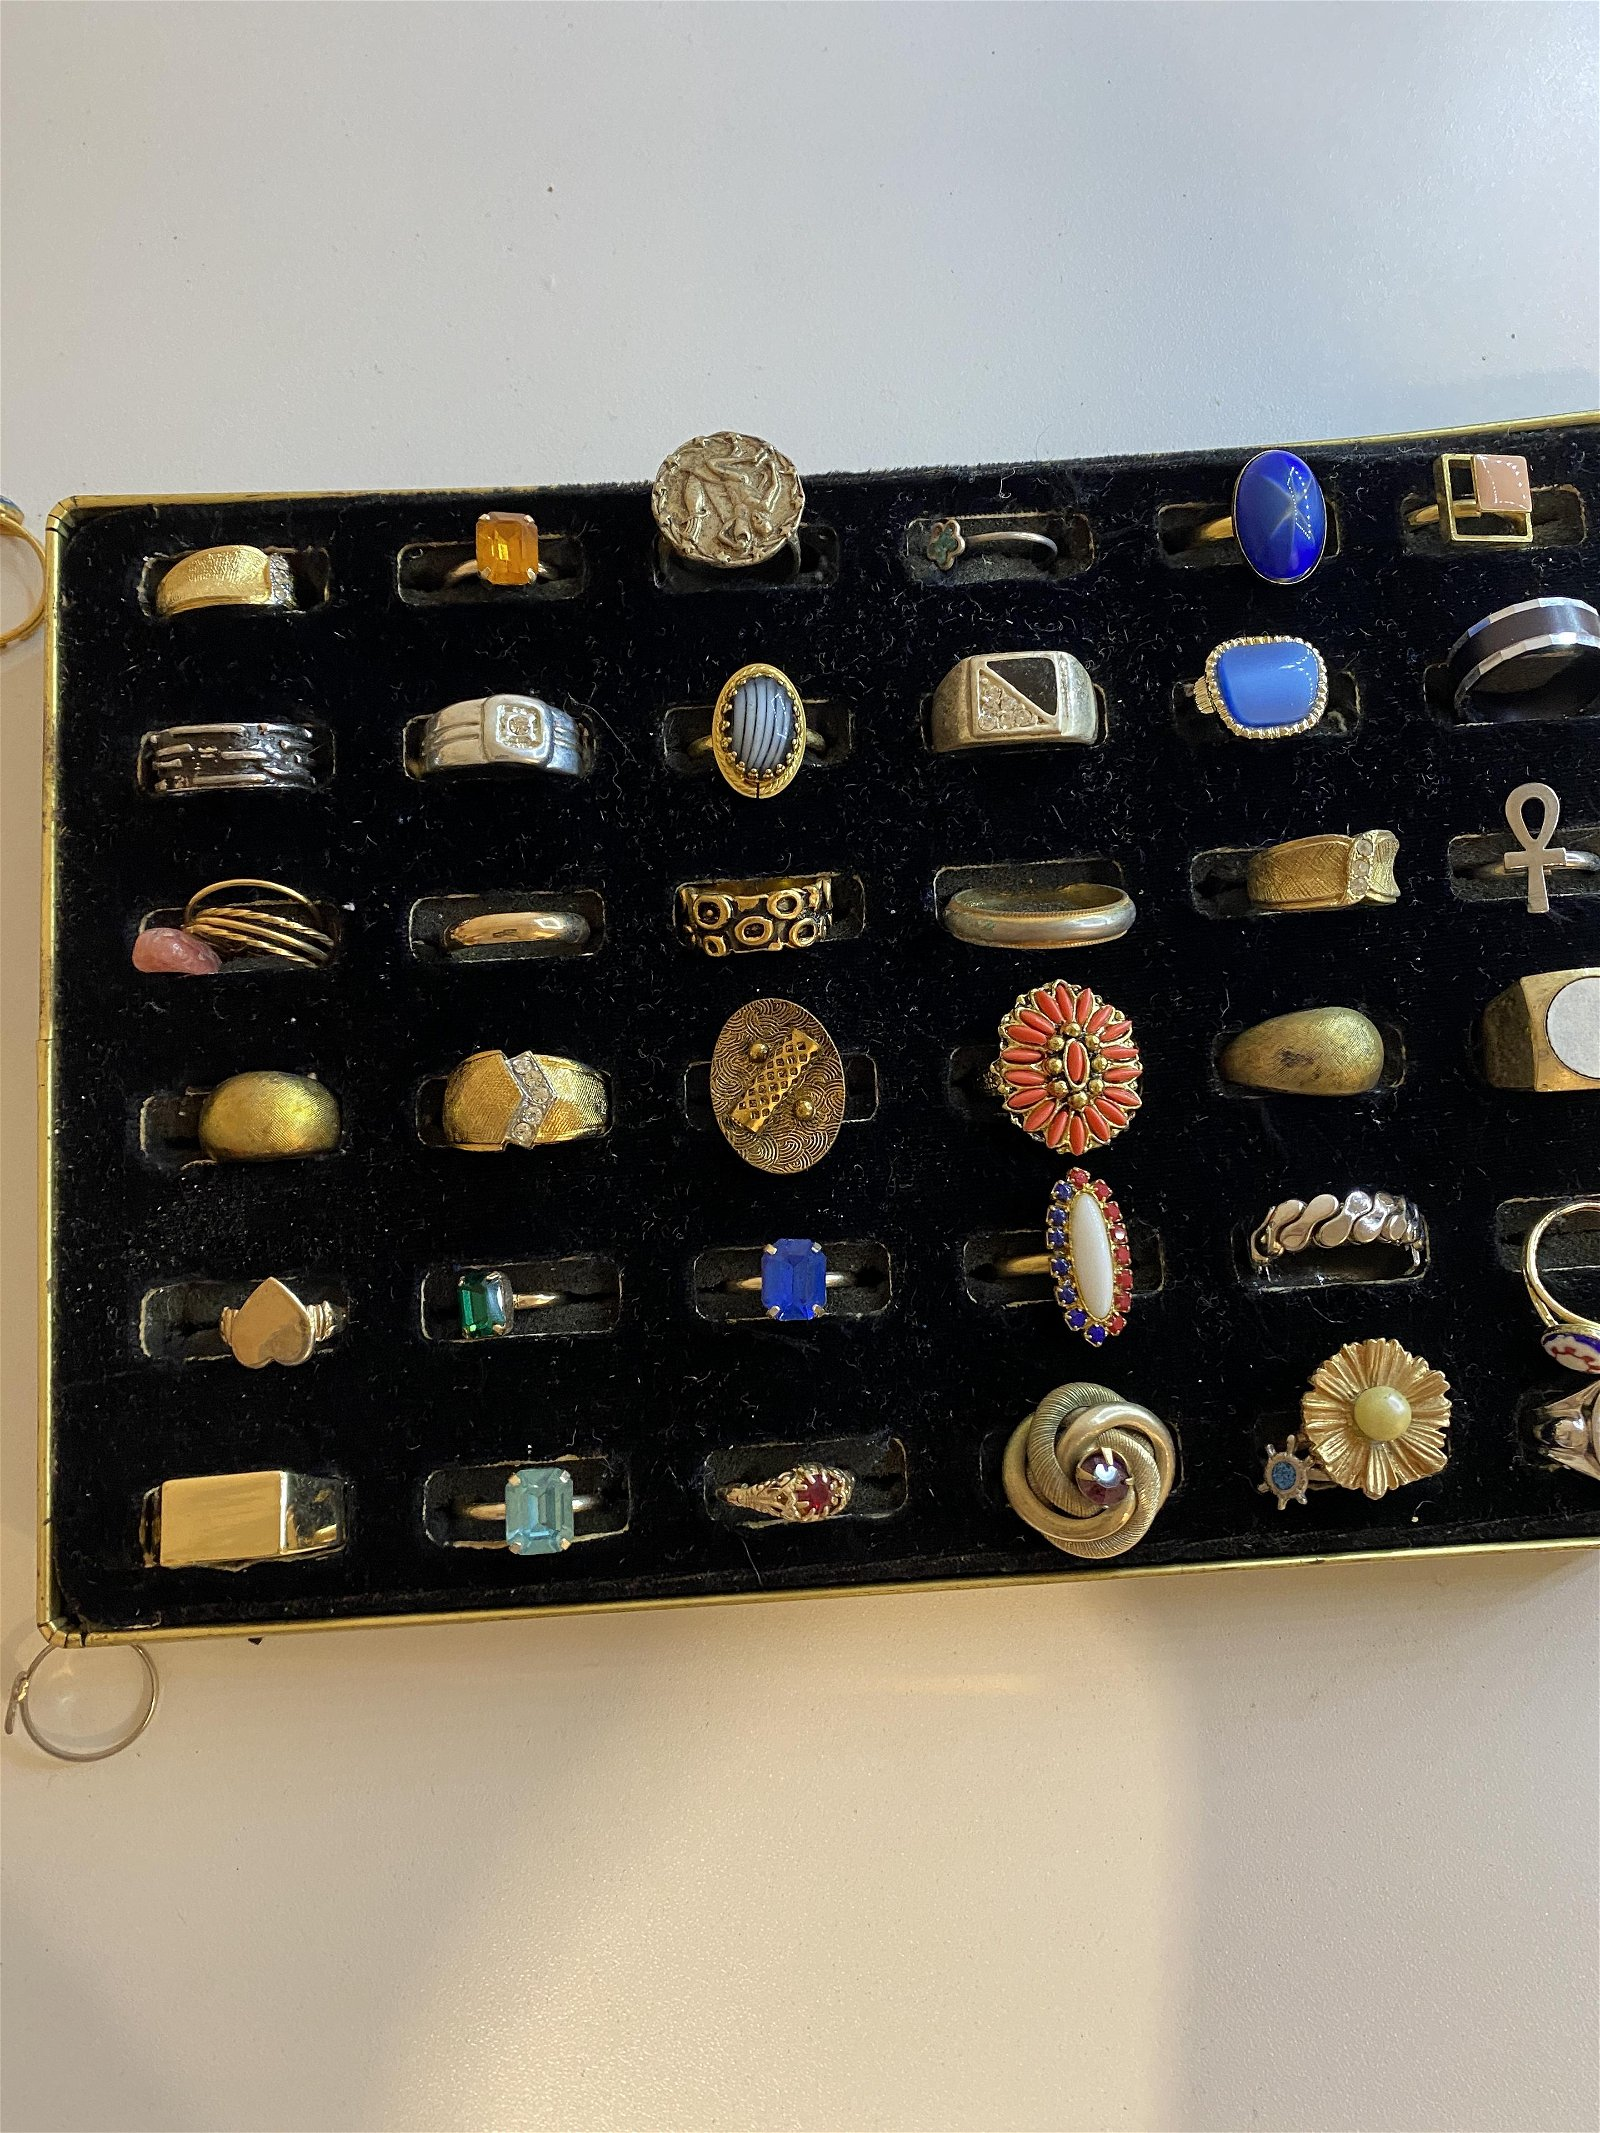 LOT OF (36) SILVER/GOLD RINGS - HIGH GRADE RINGS